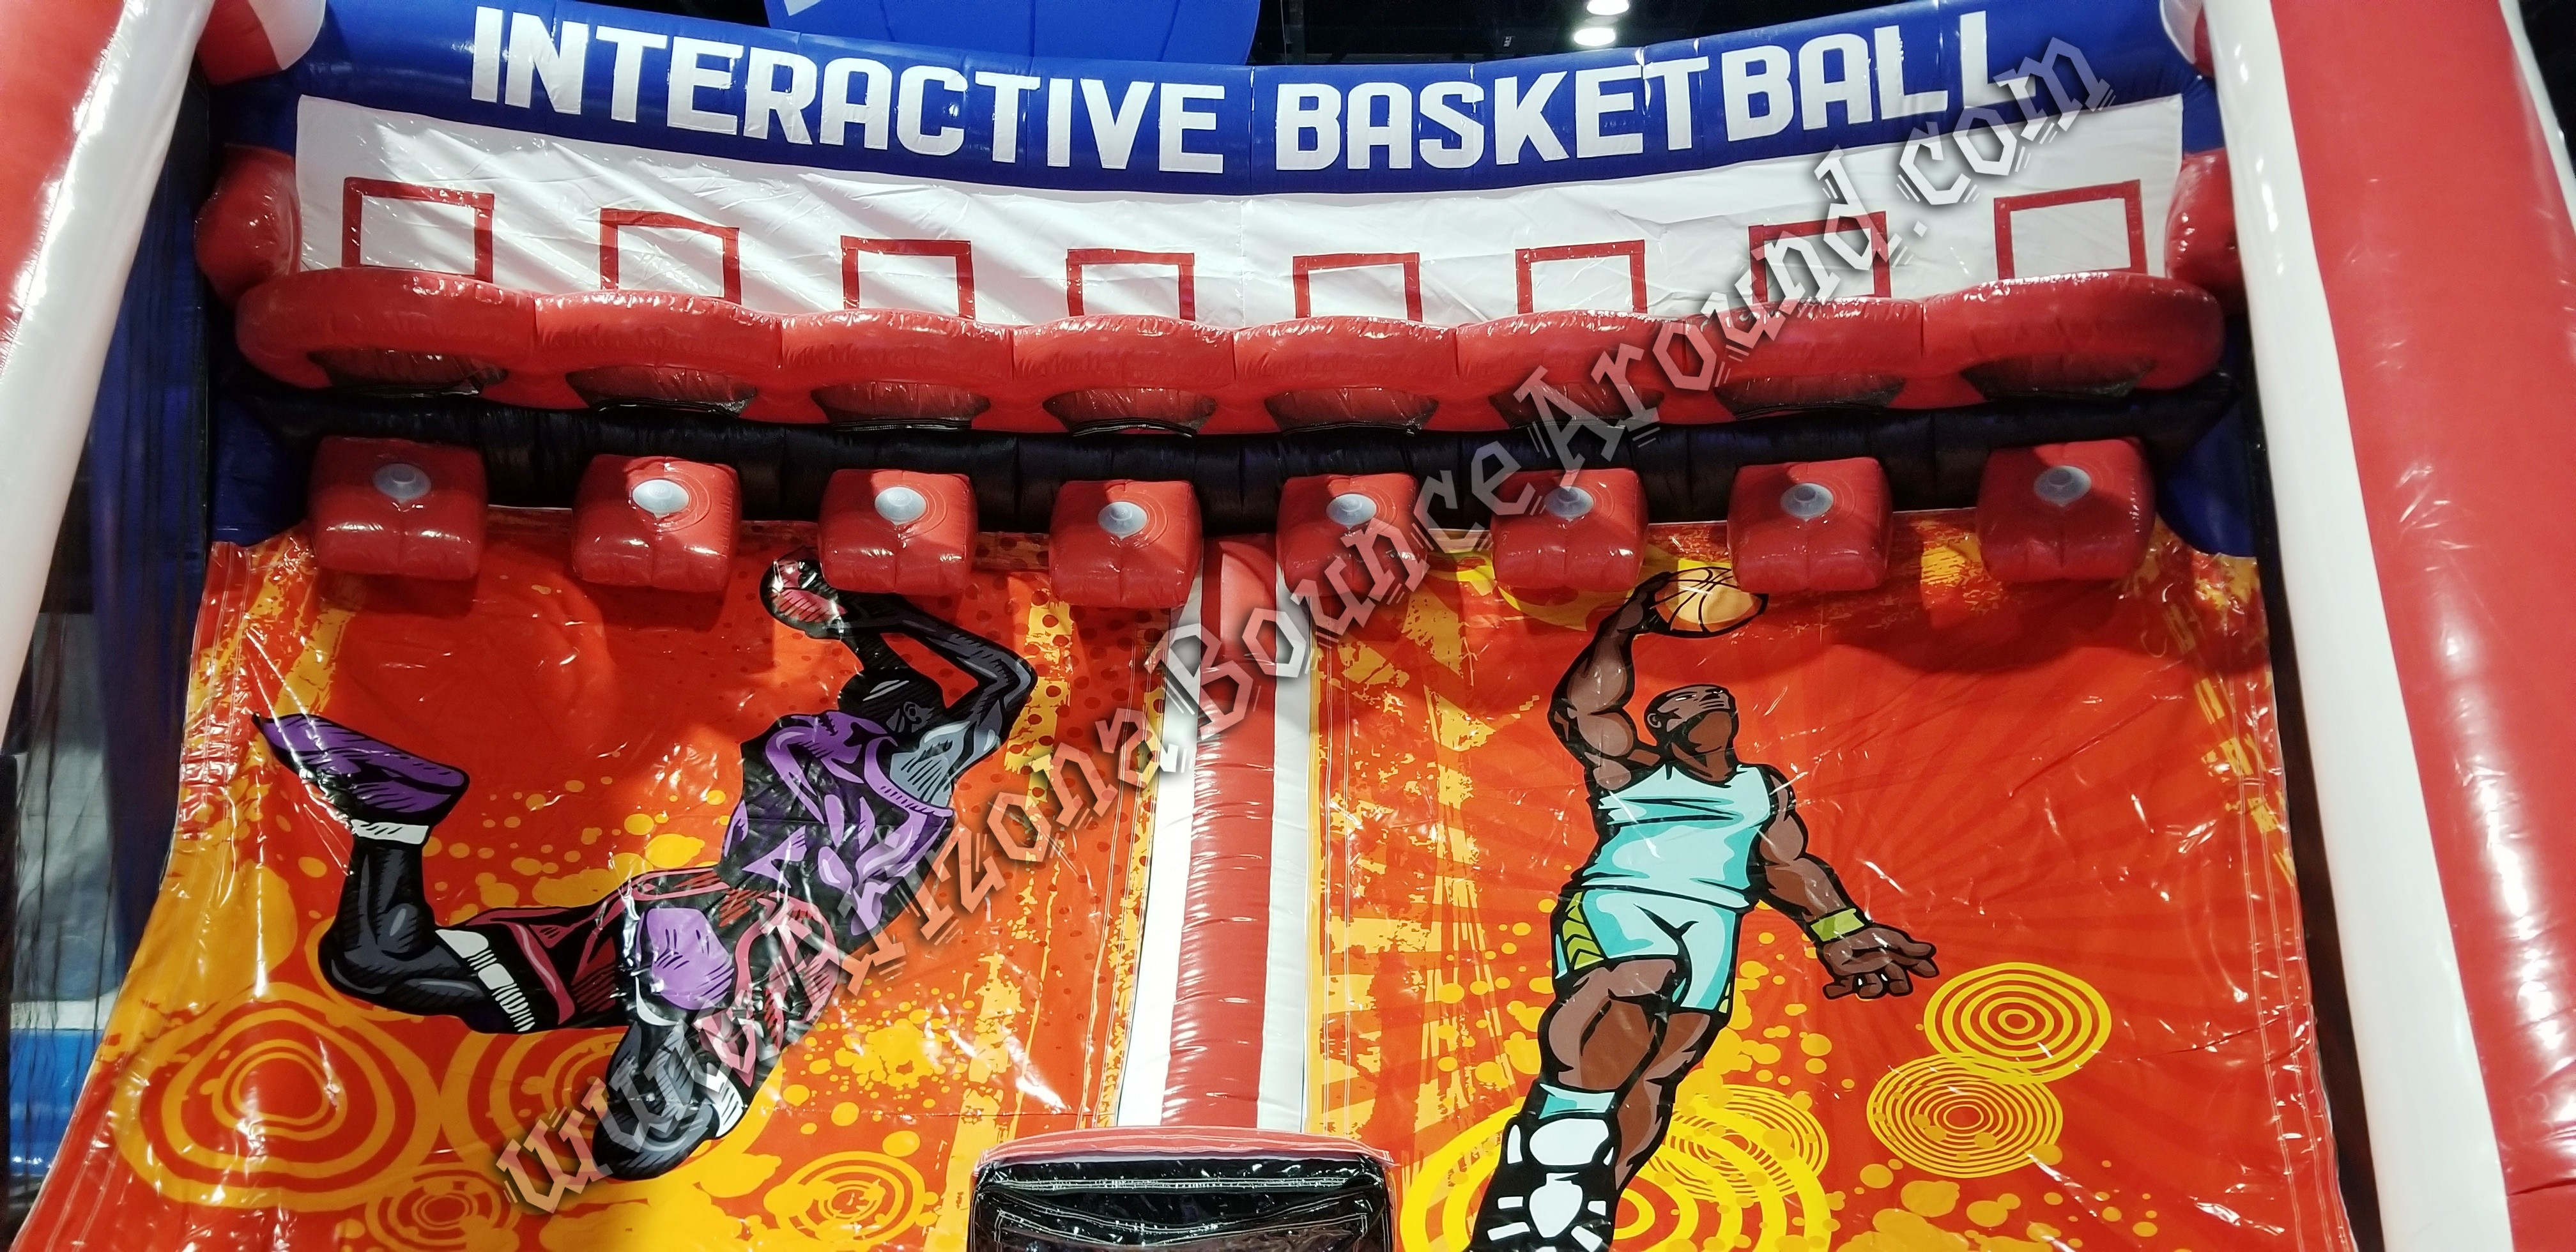 Basketball game rental Phoenix Arizona